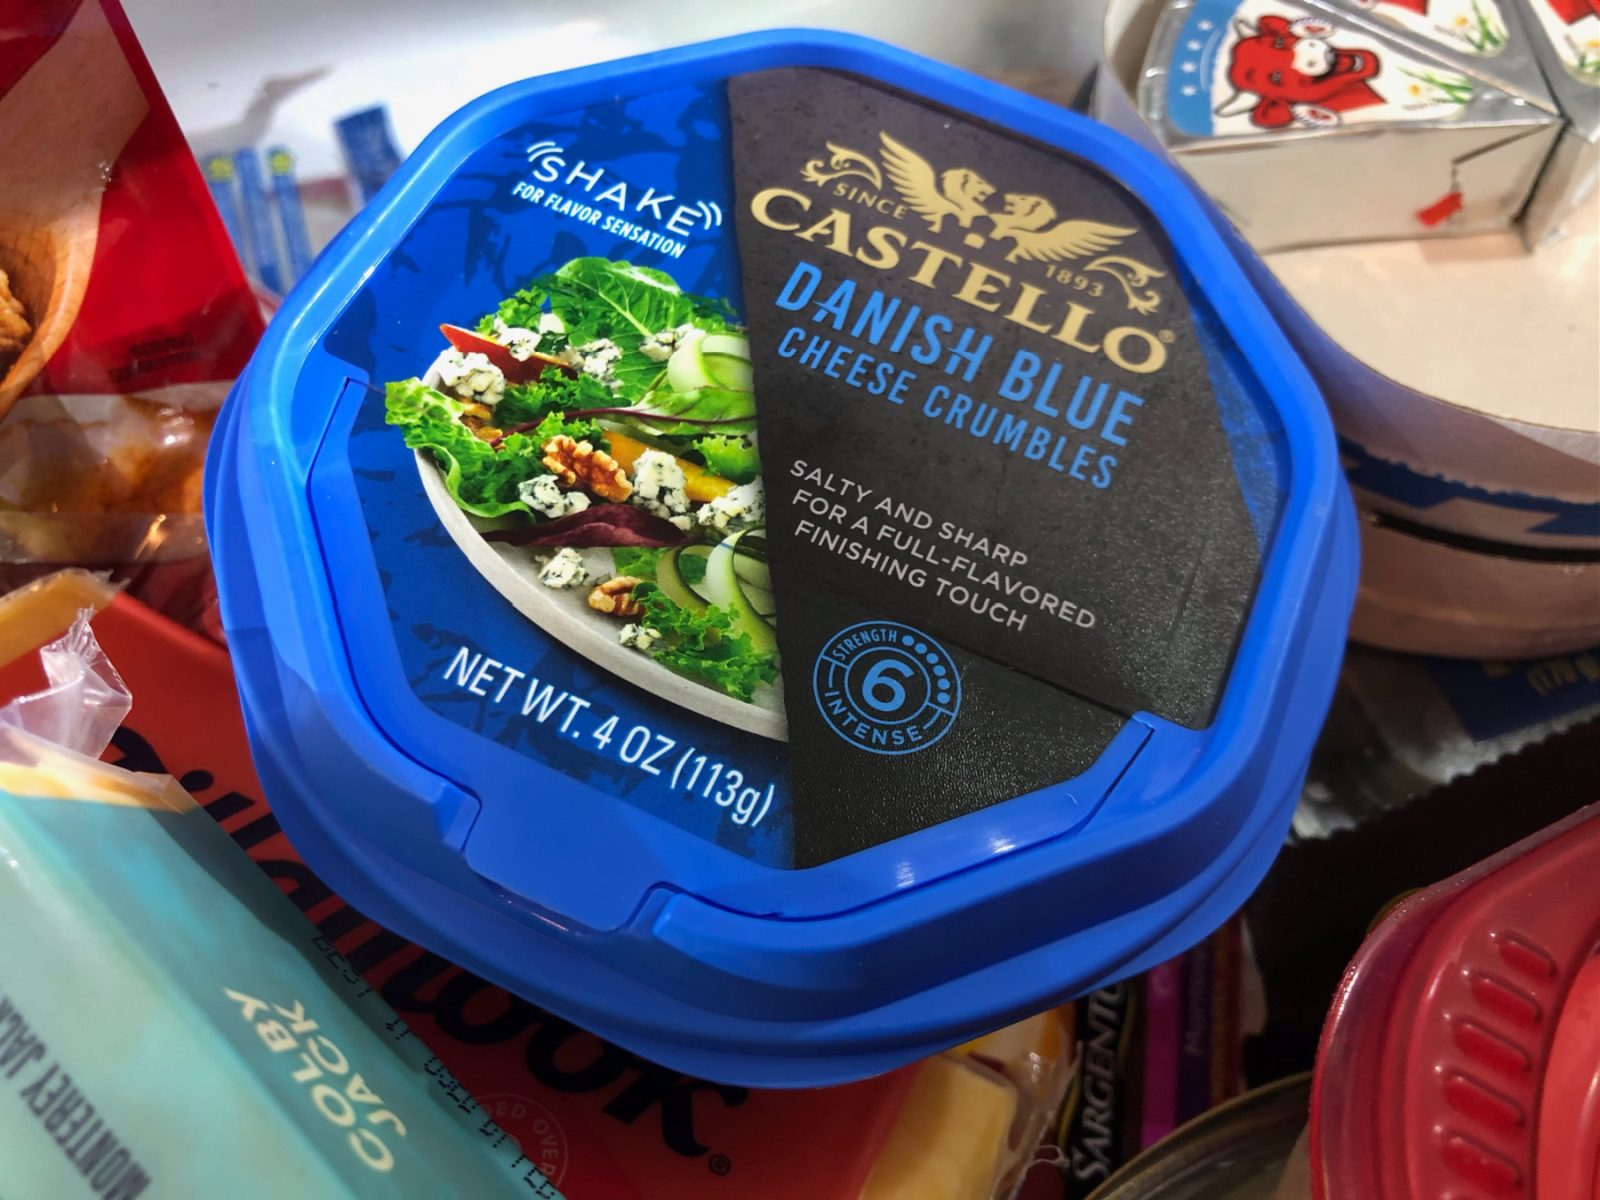 Awesome Castello Cheese Deals - Blue Cheese Crumbles Just $1.45 At Publix on I Heart Publix